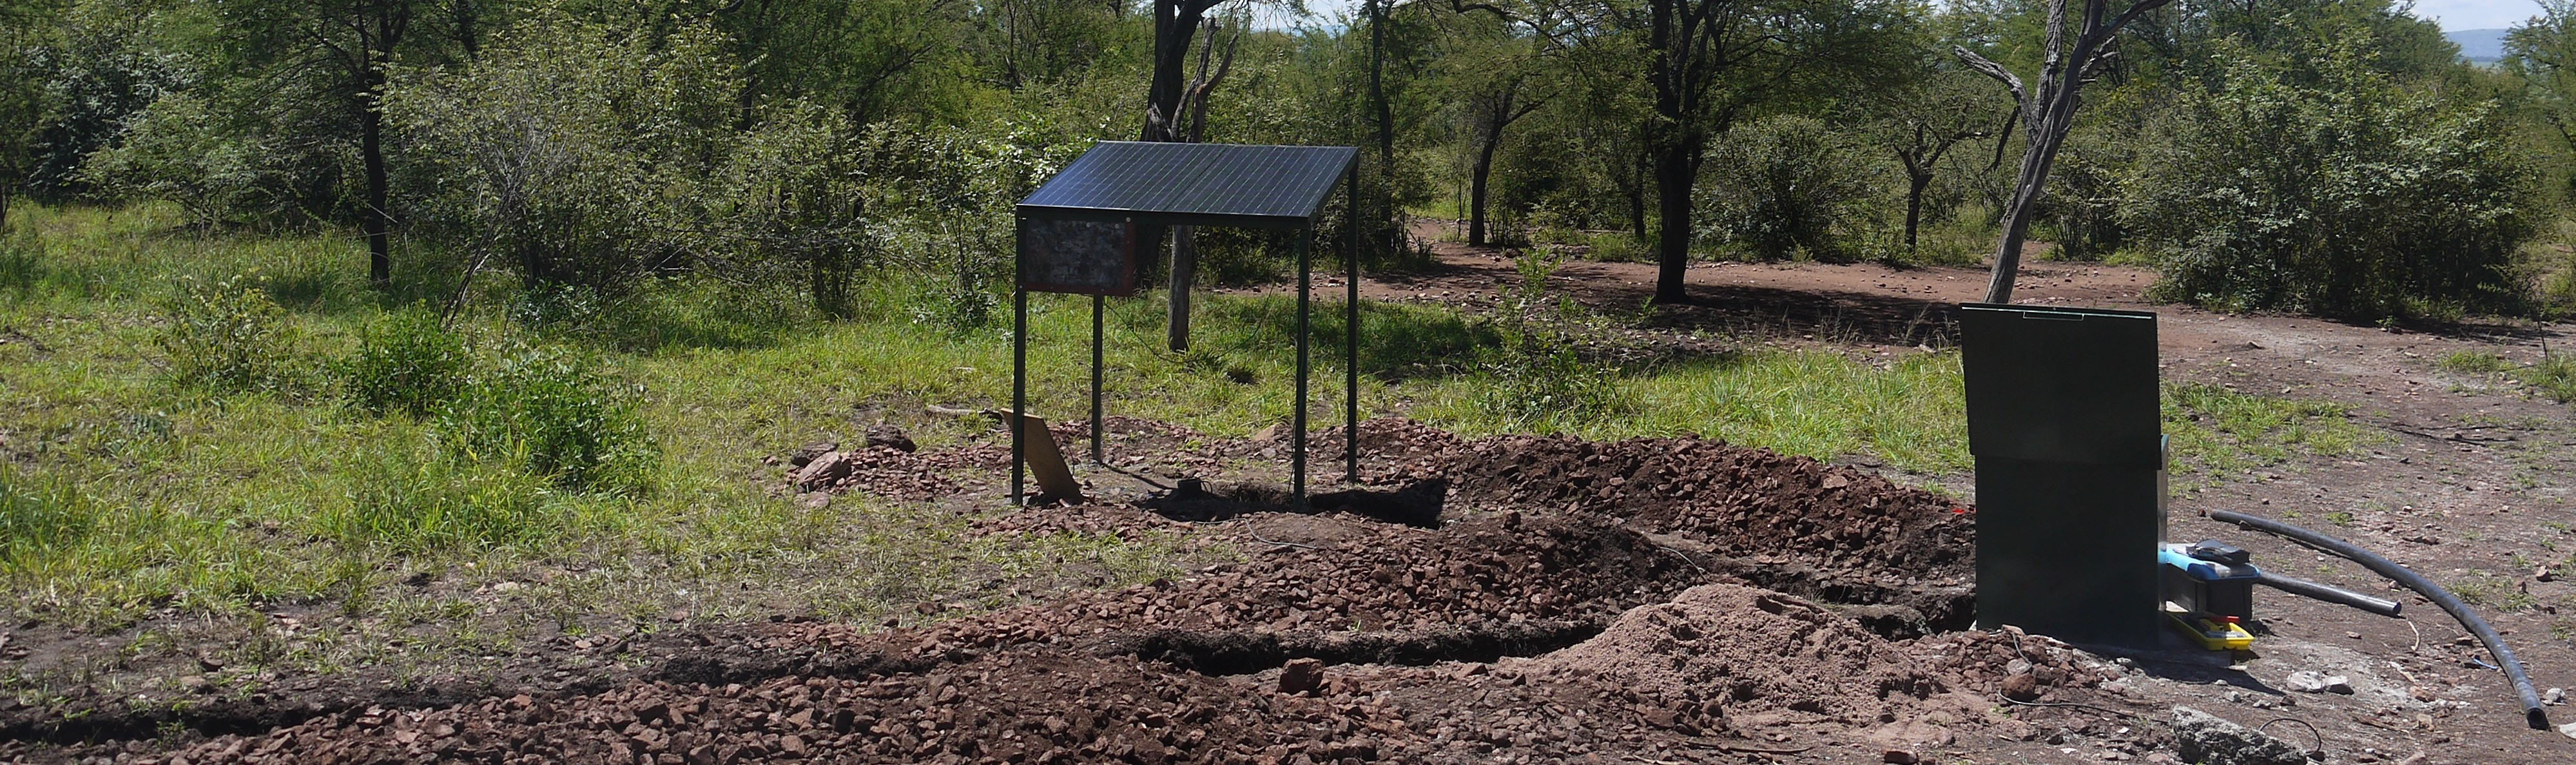 Submersible Pumping System for Drinking Water for Animals, Grumeti Reserves